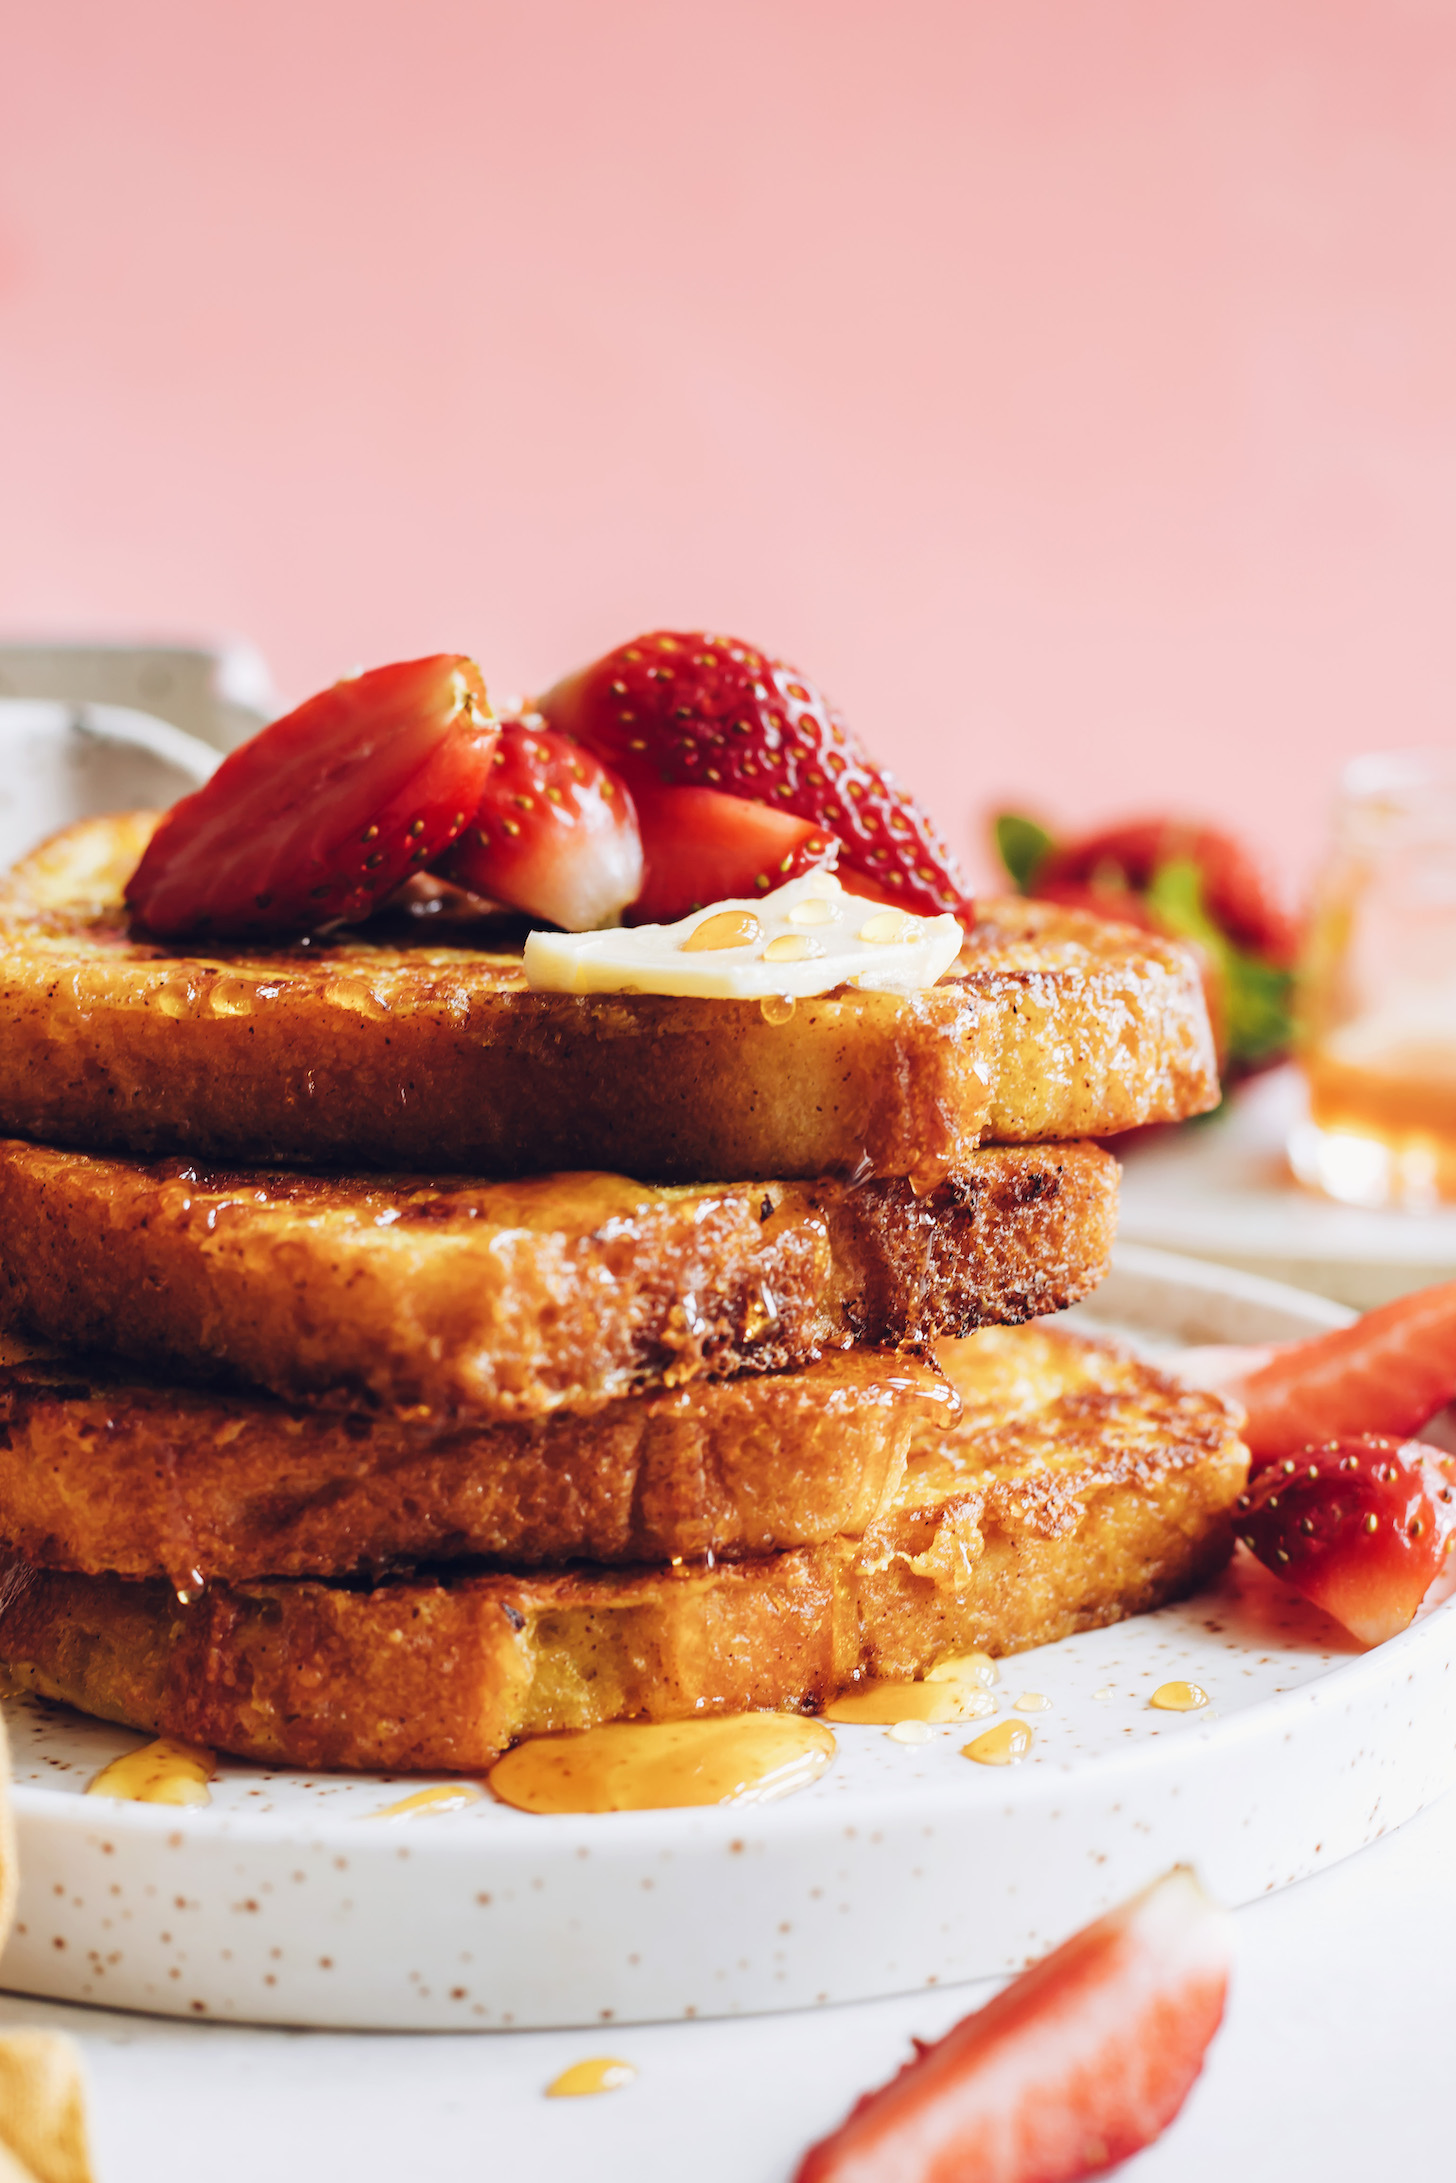 Stack of slices of vegan French toast with vegan butter and strawberries